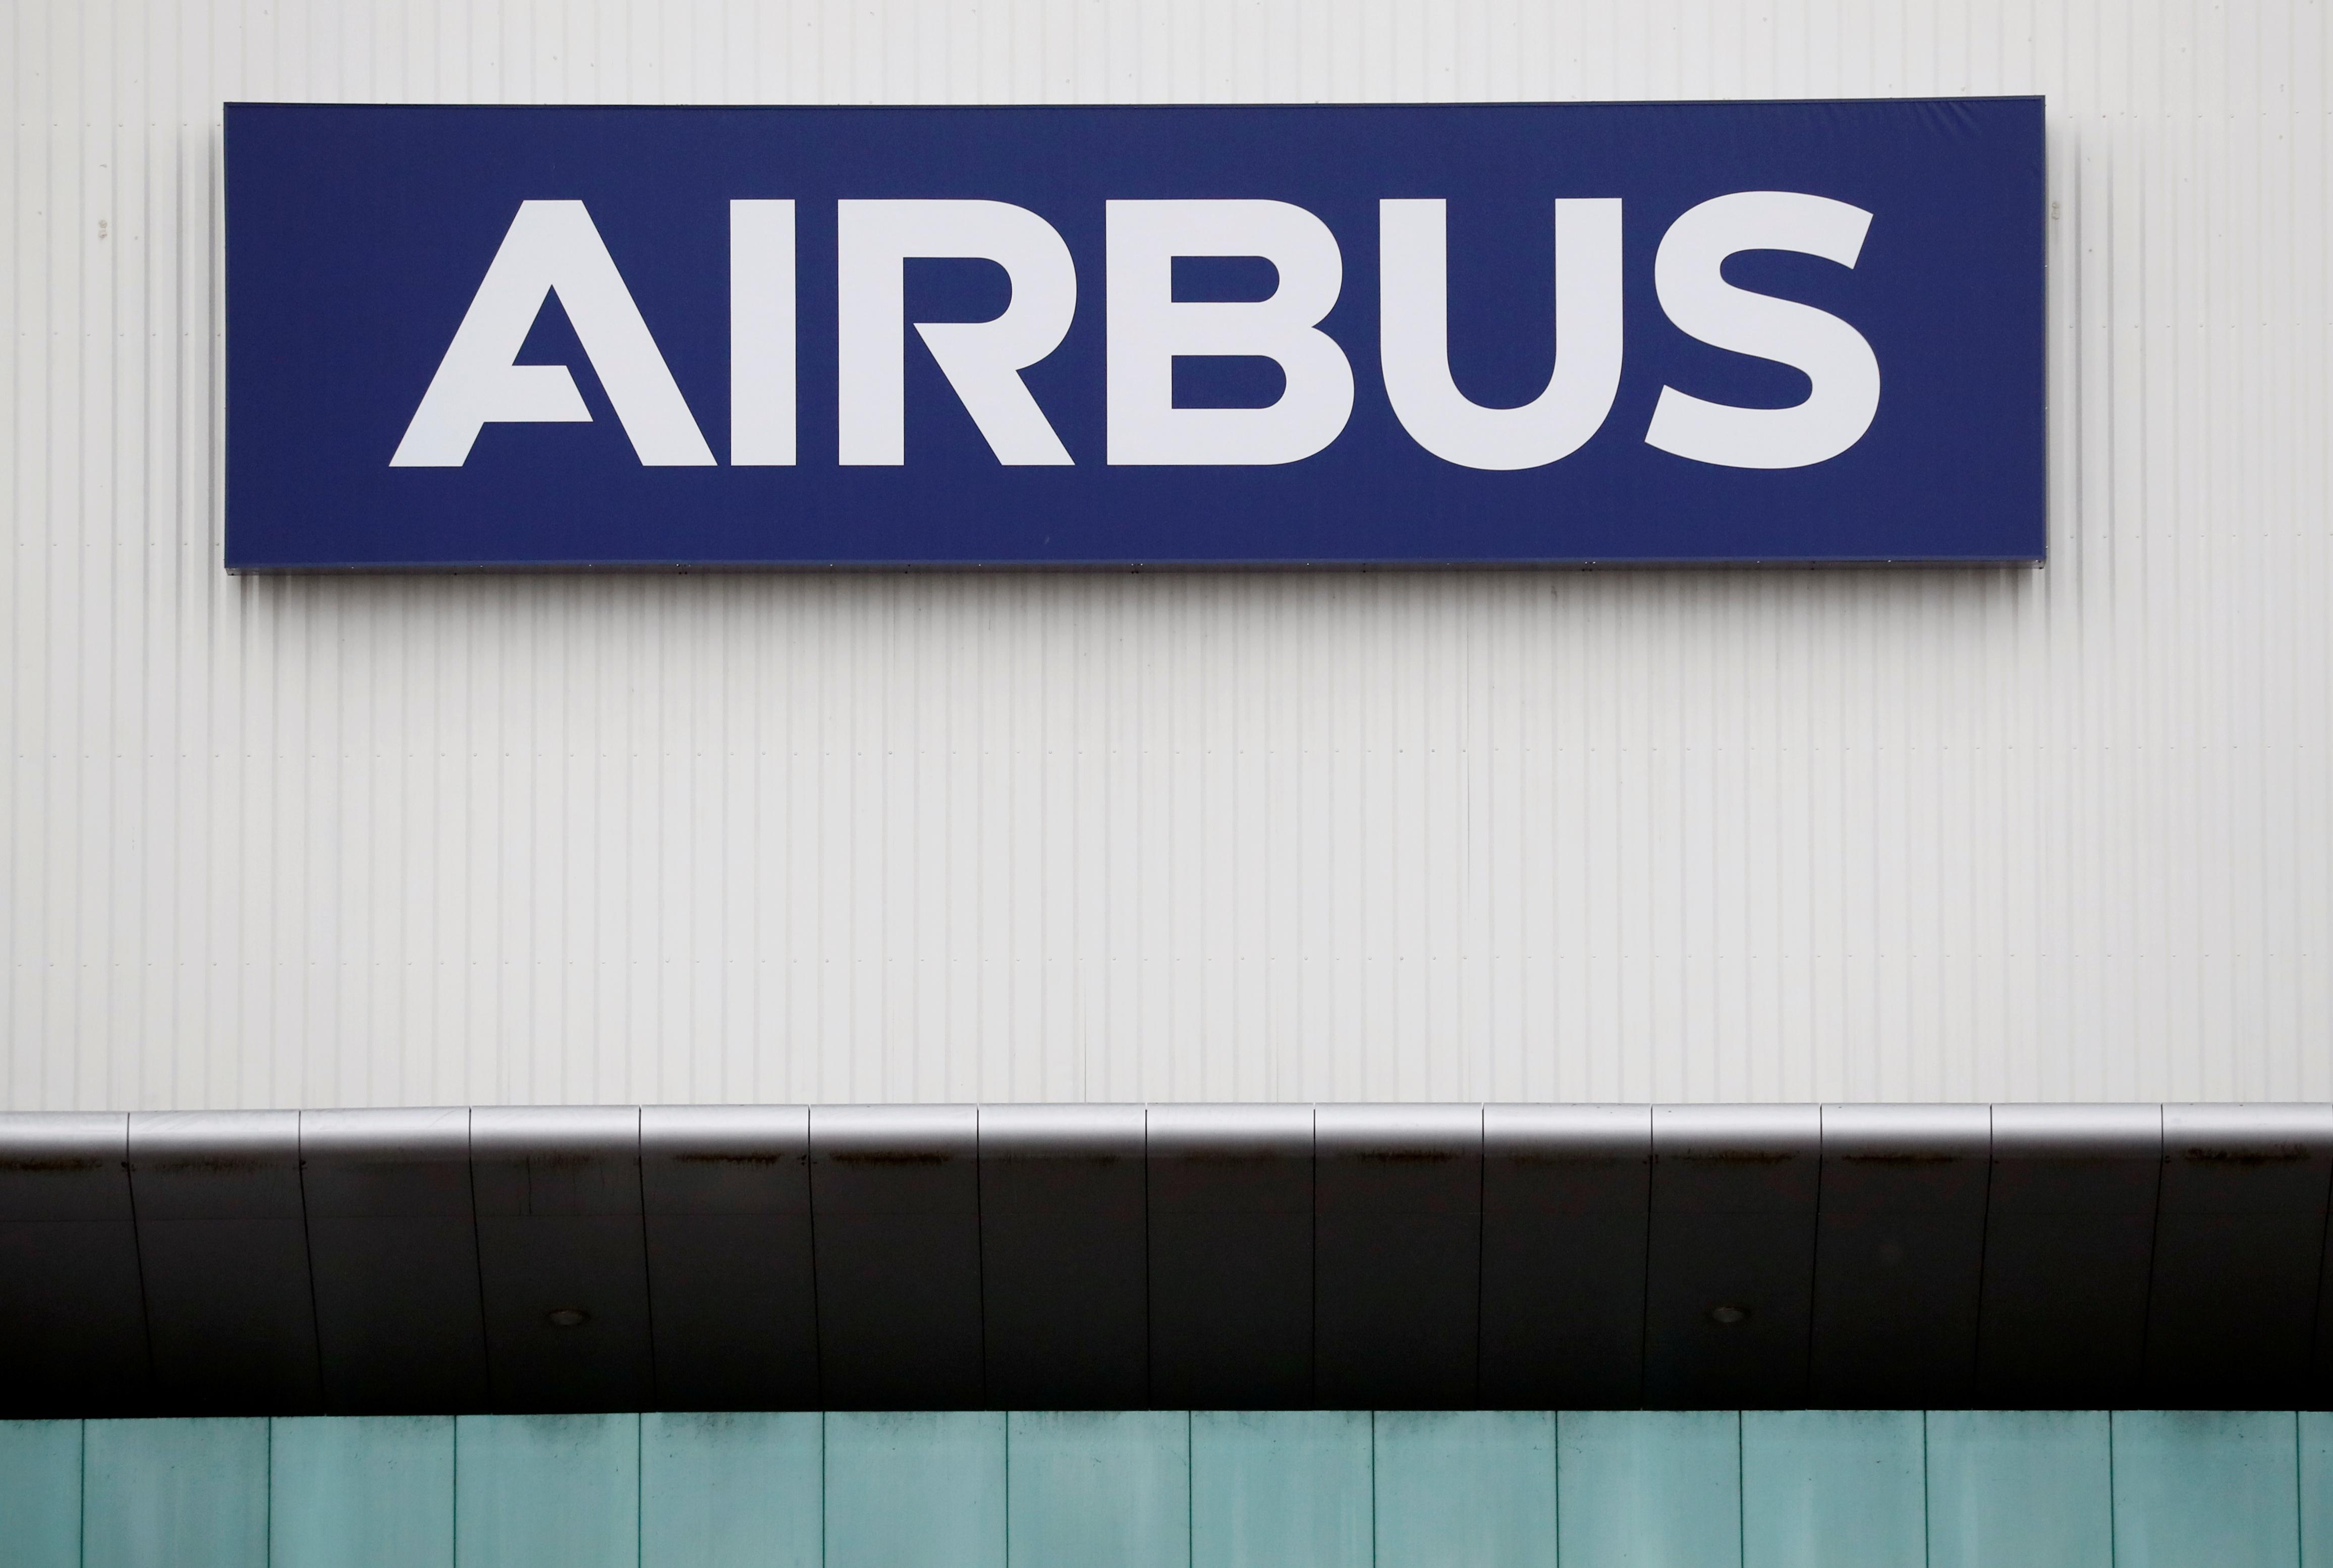 Airbus union calls for 24-hour strike at Spanish plants